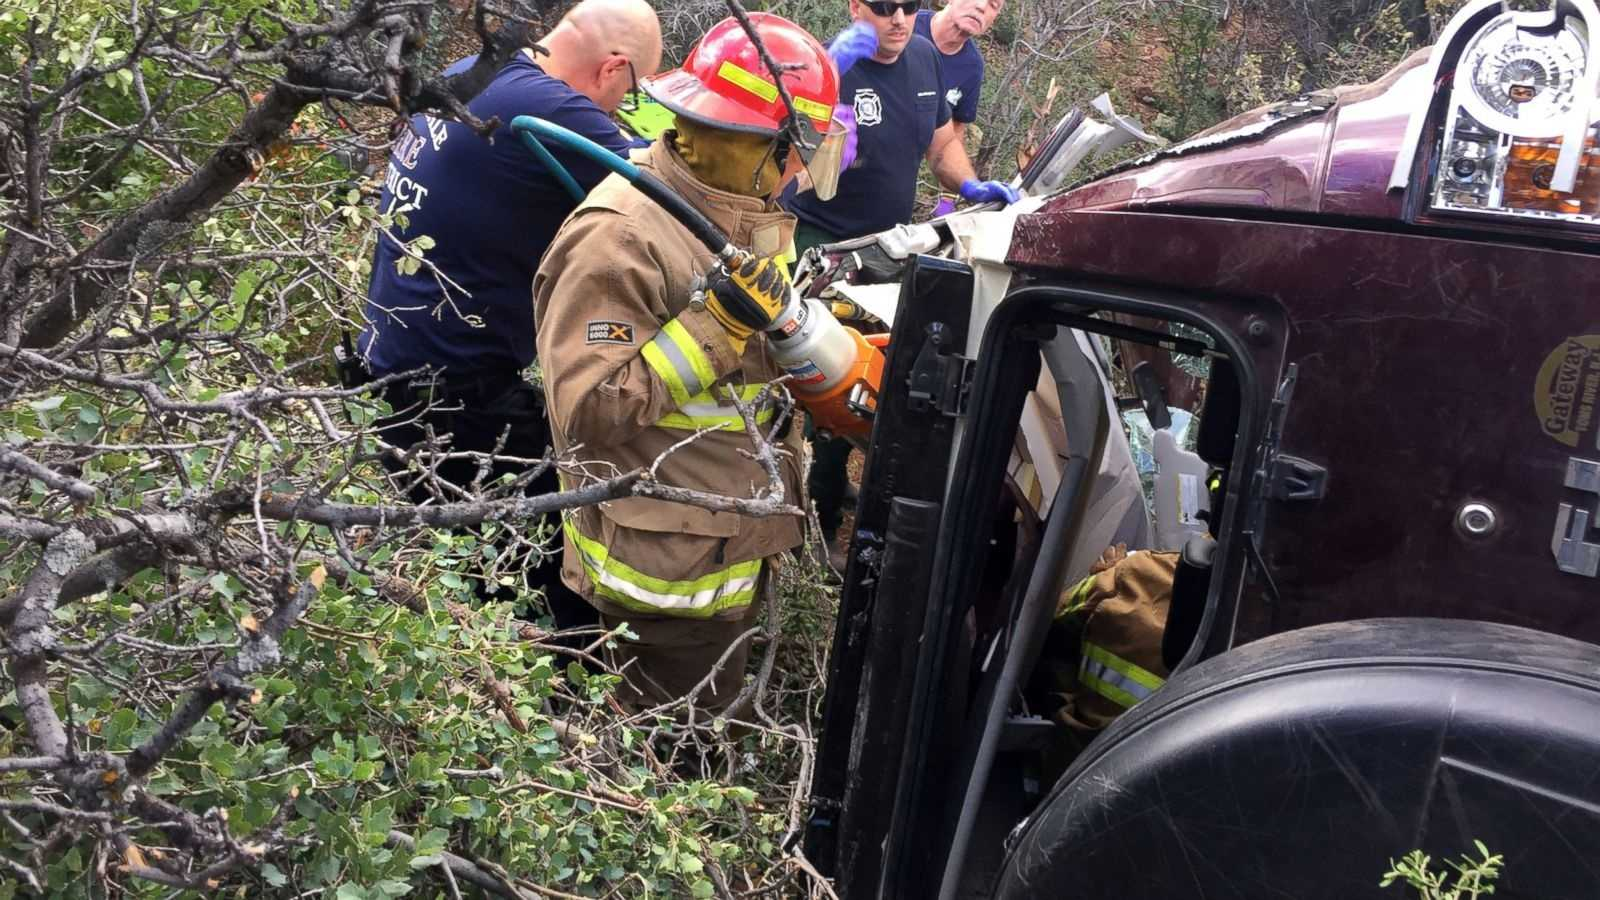 This photo provided by Kim Moore shows firefighters working to extricate a 50-year-old man from his crashed car on Mingus Mountain in Yavapai County, Arizona on Friday, May 27, 2016. Authorities say a man trapped in his crashed vehicle on a central Arizona mountain for three days was rescued thanks to a couple taking sightseeing photos.